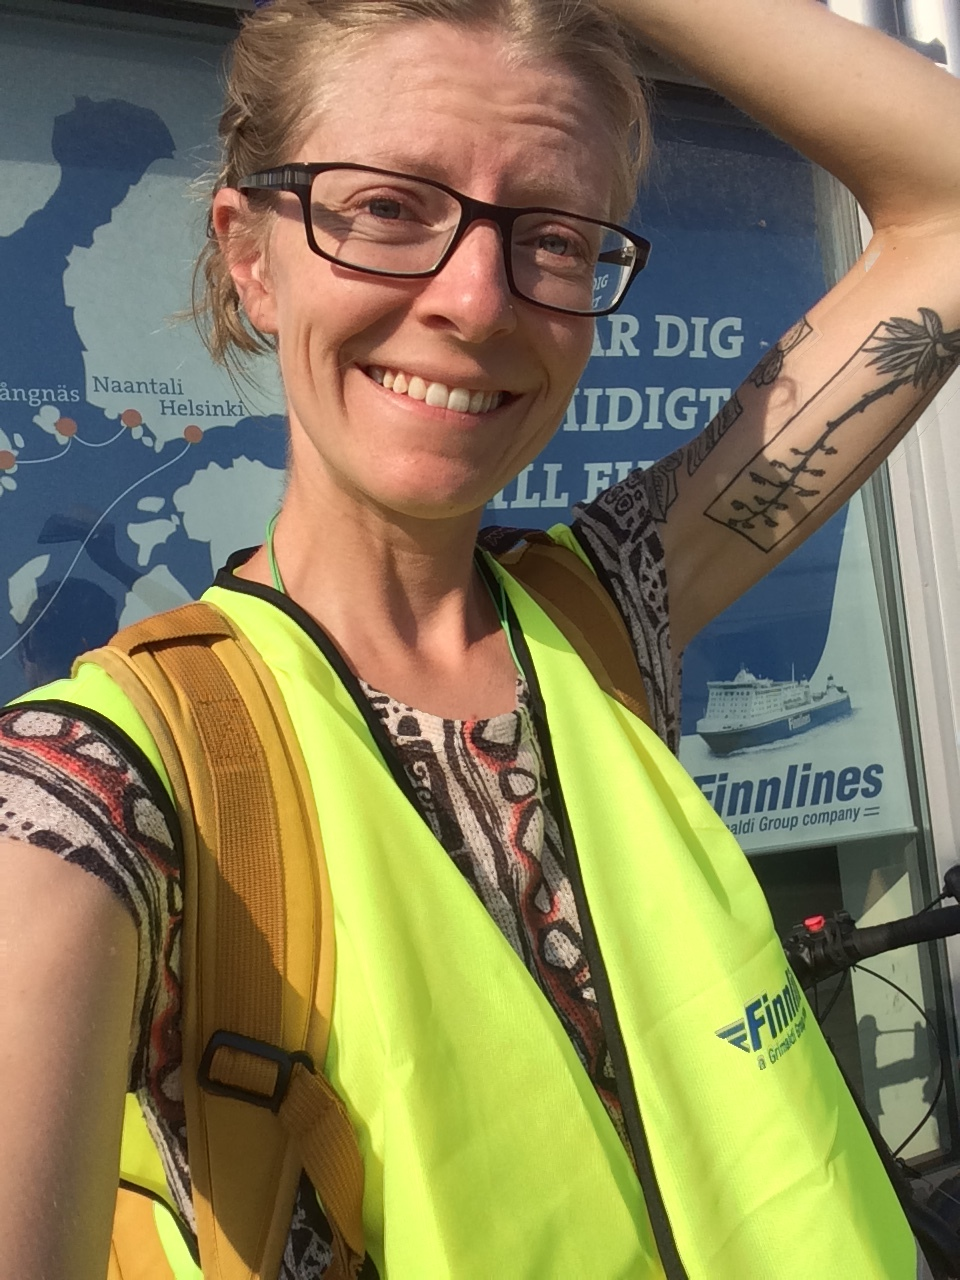 Me getting ready to get onto the ferry back down to Travemünde from Malmö - they gave me a high-vis jacket so that I could safely cycle onto the ferry along with the cars and trucks!